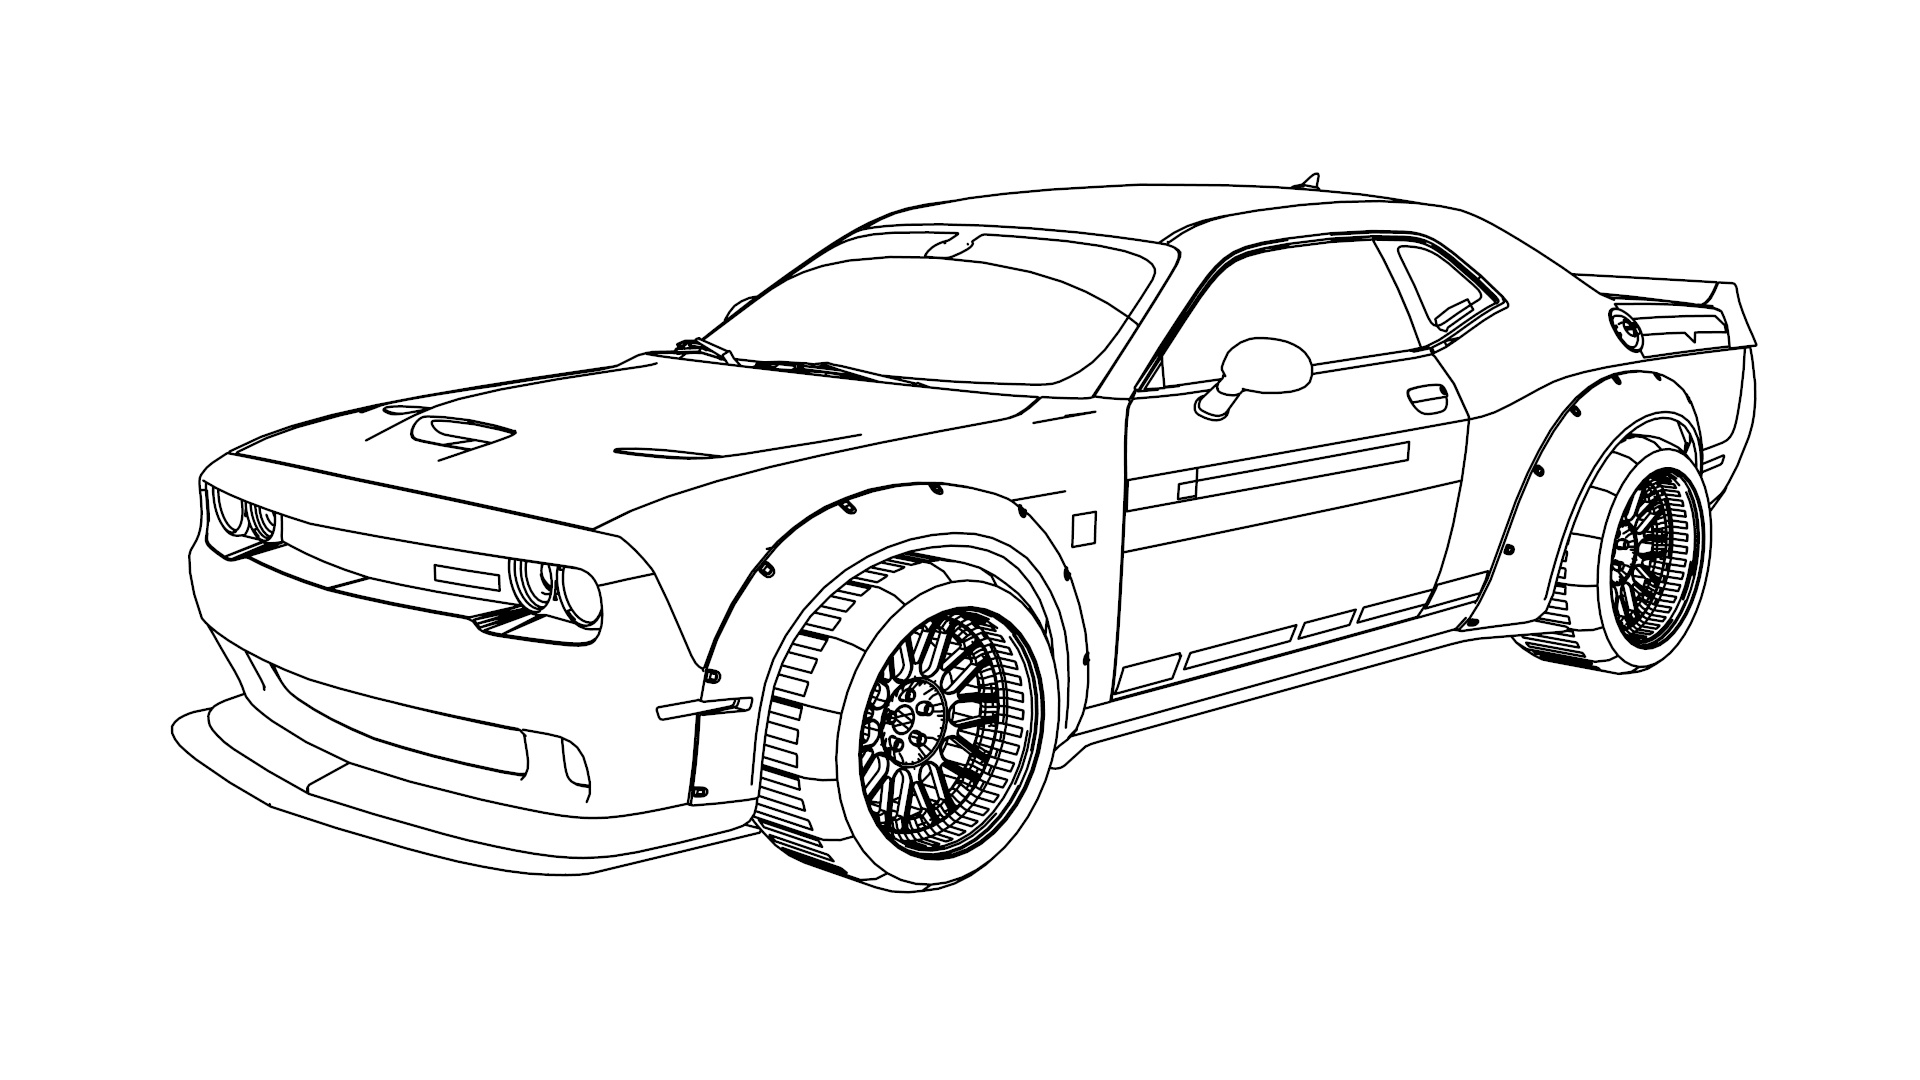 Dodge Challenger SRT Hellcat LBW 2015 Coloring Page